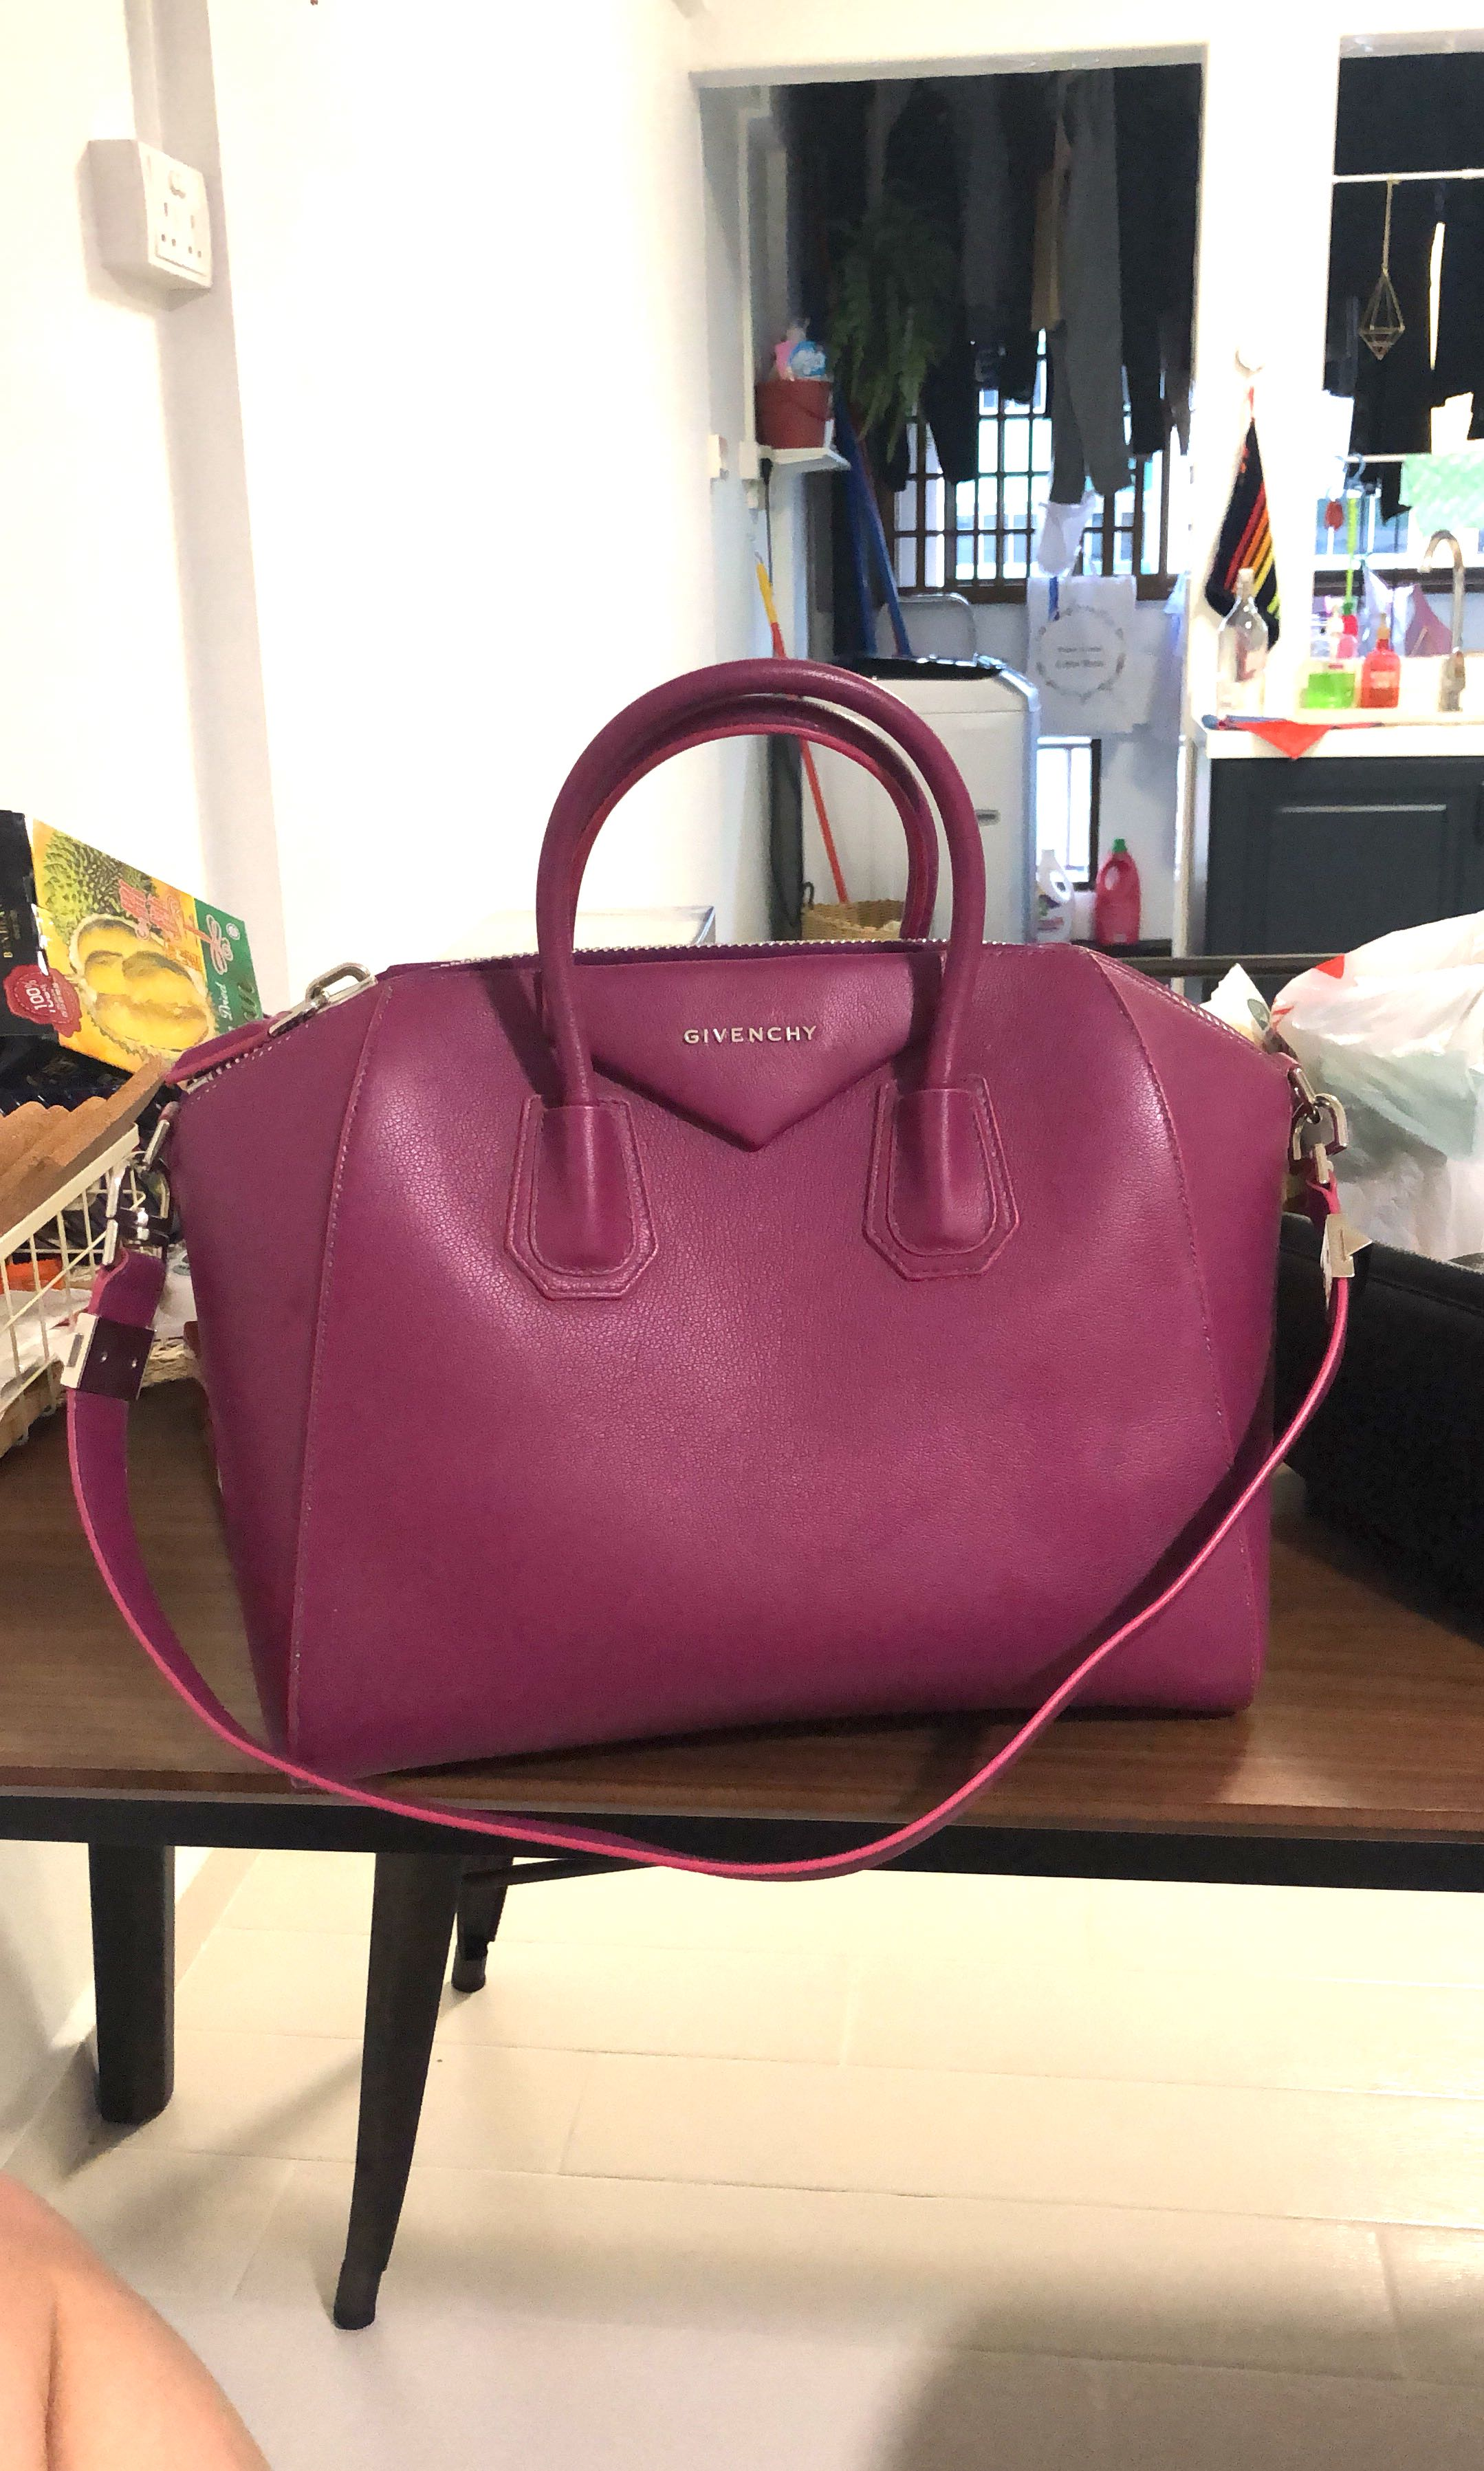 a5225c7215 Givenchy Antigona Medium tote, Orchid purple, Luxury, Bags & Wallets,  Handbags on Carousell